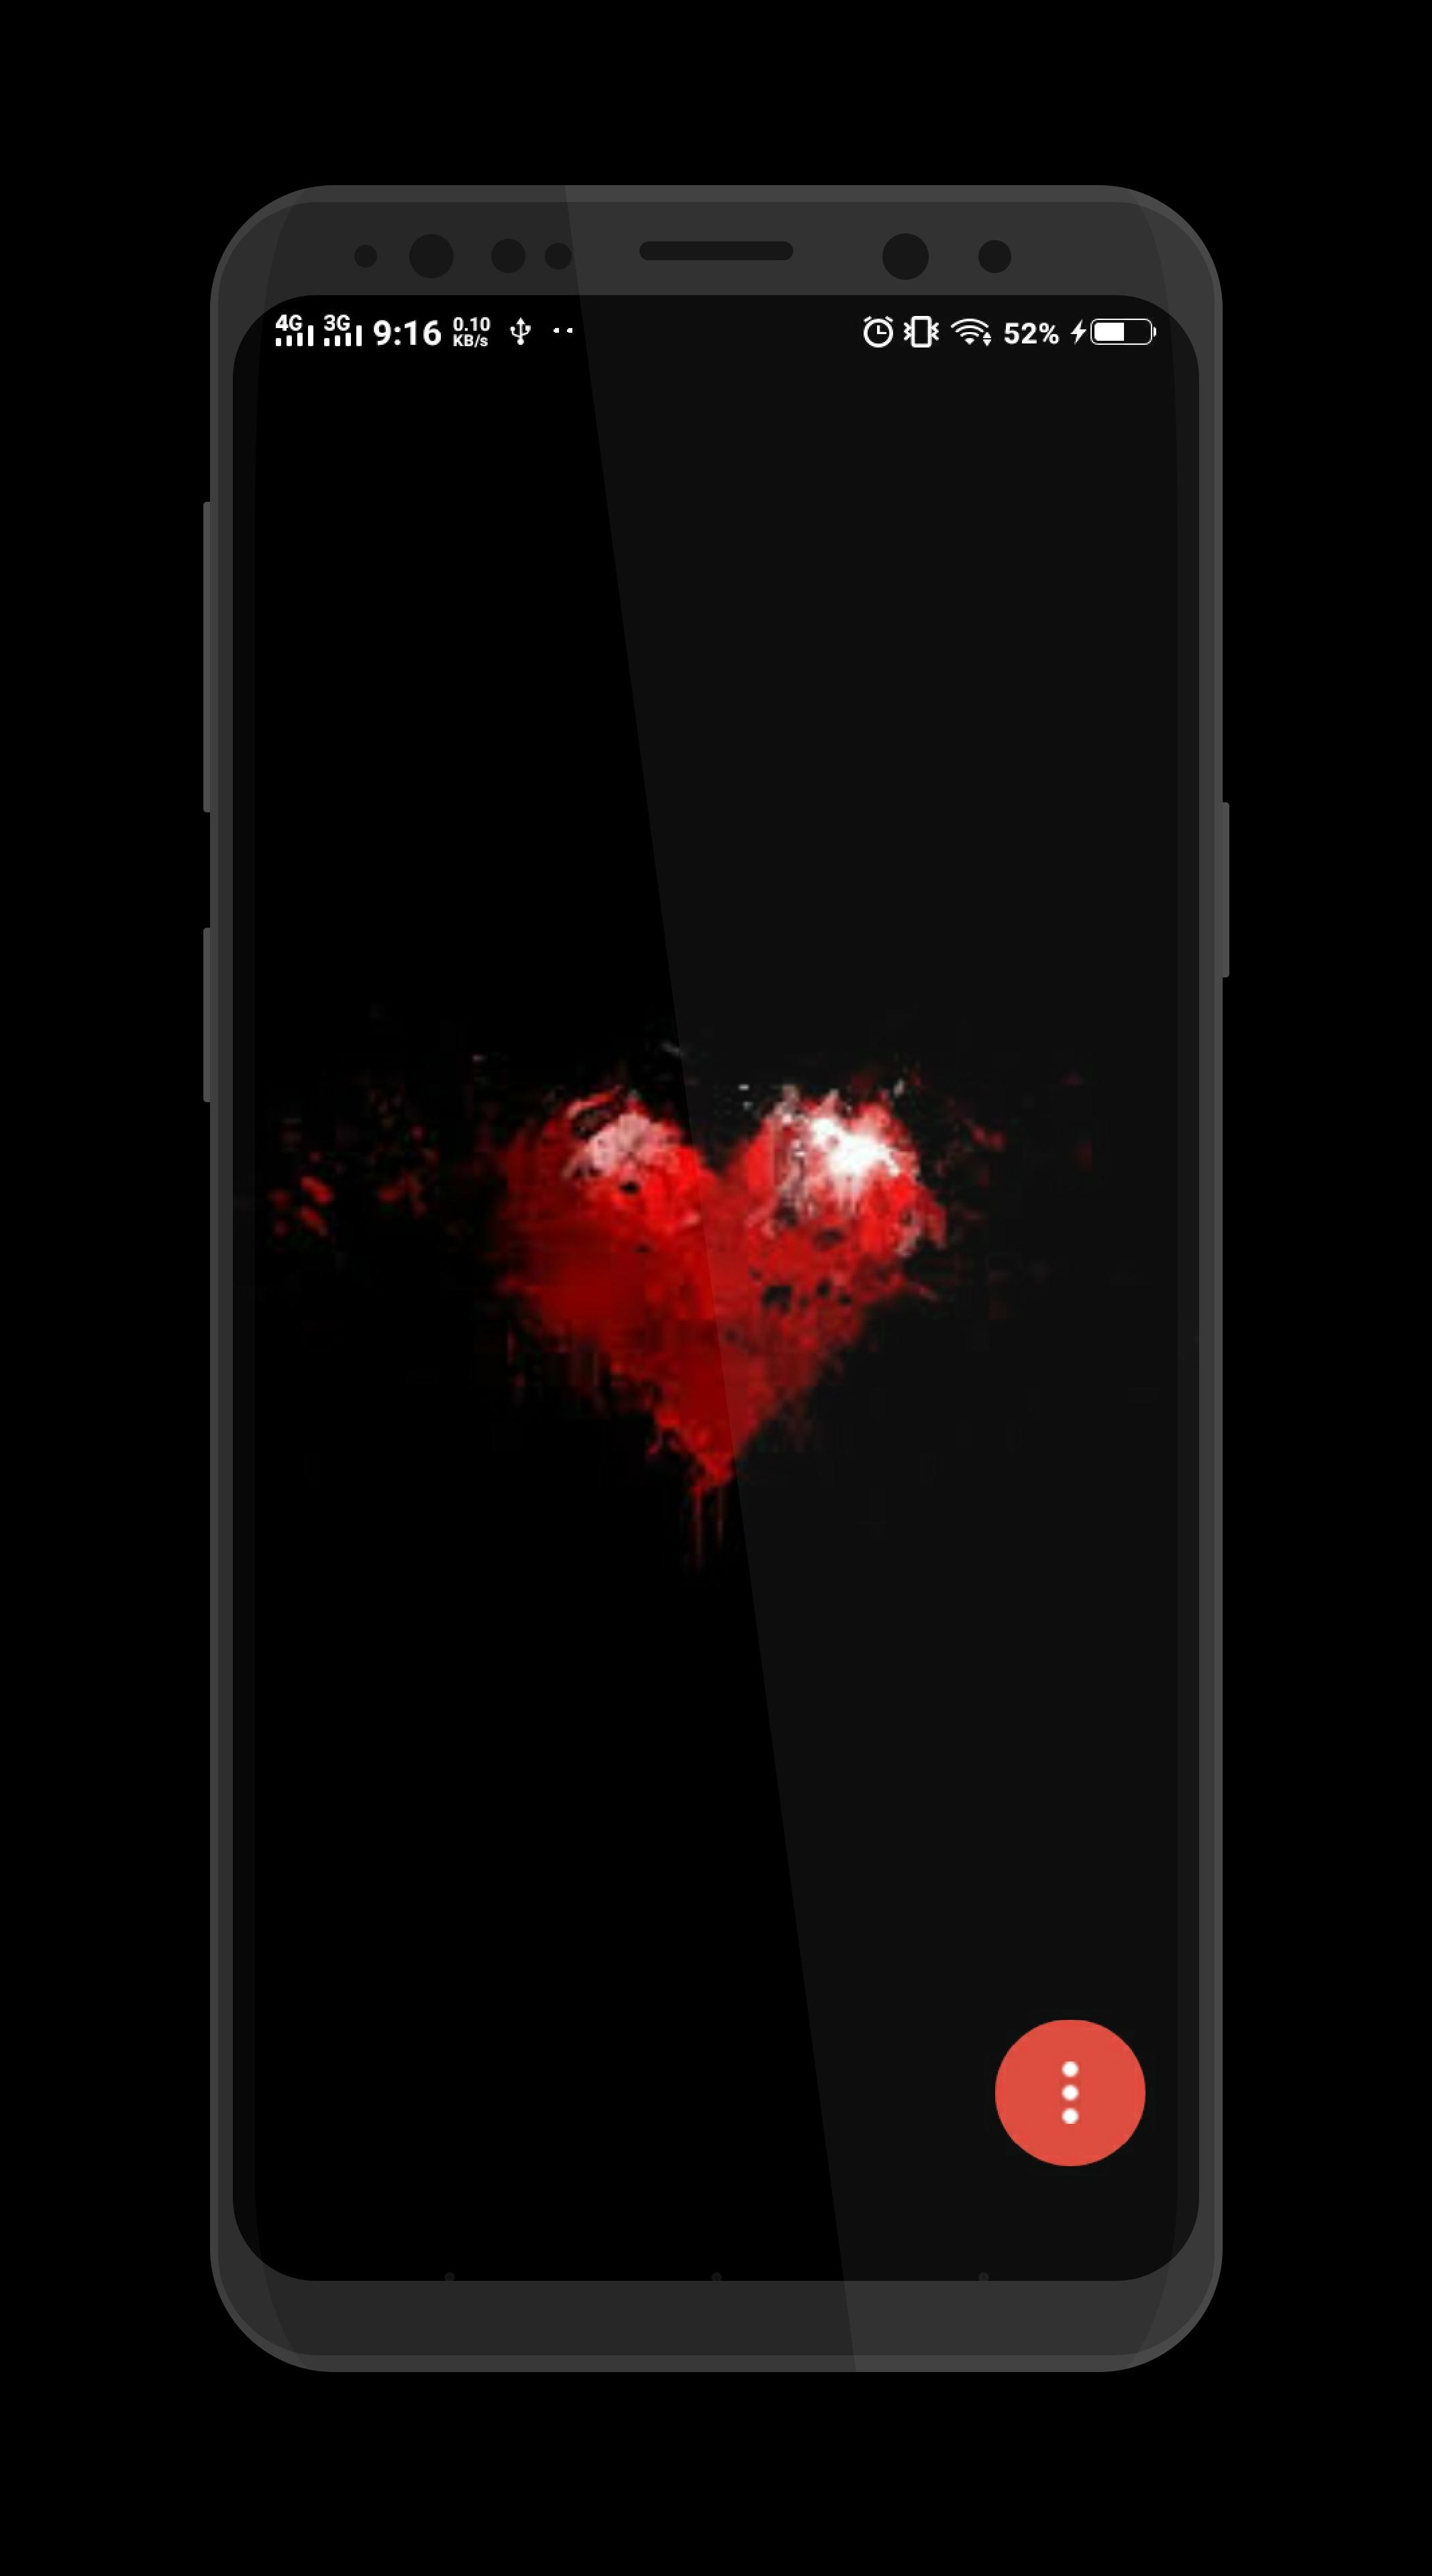 Black Heart Wallpapers Hd For Android Apk Download